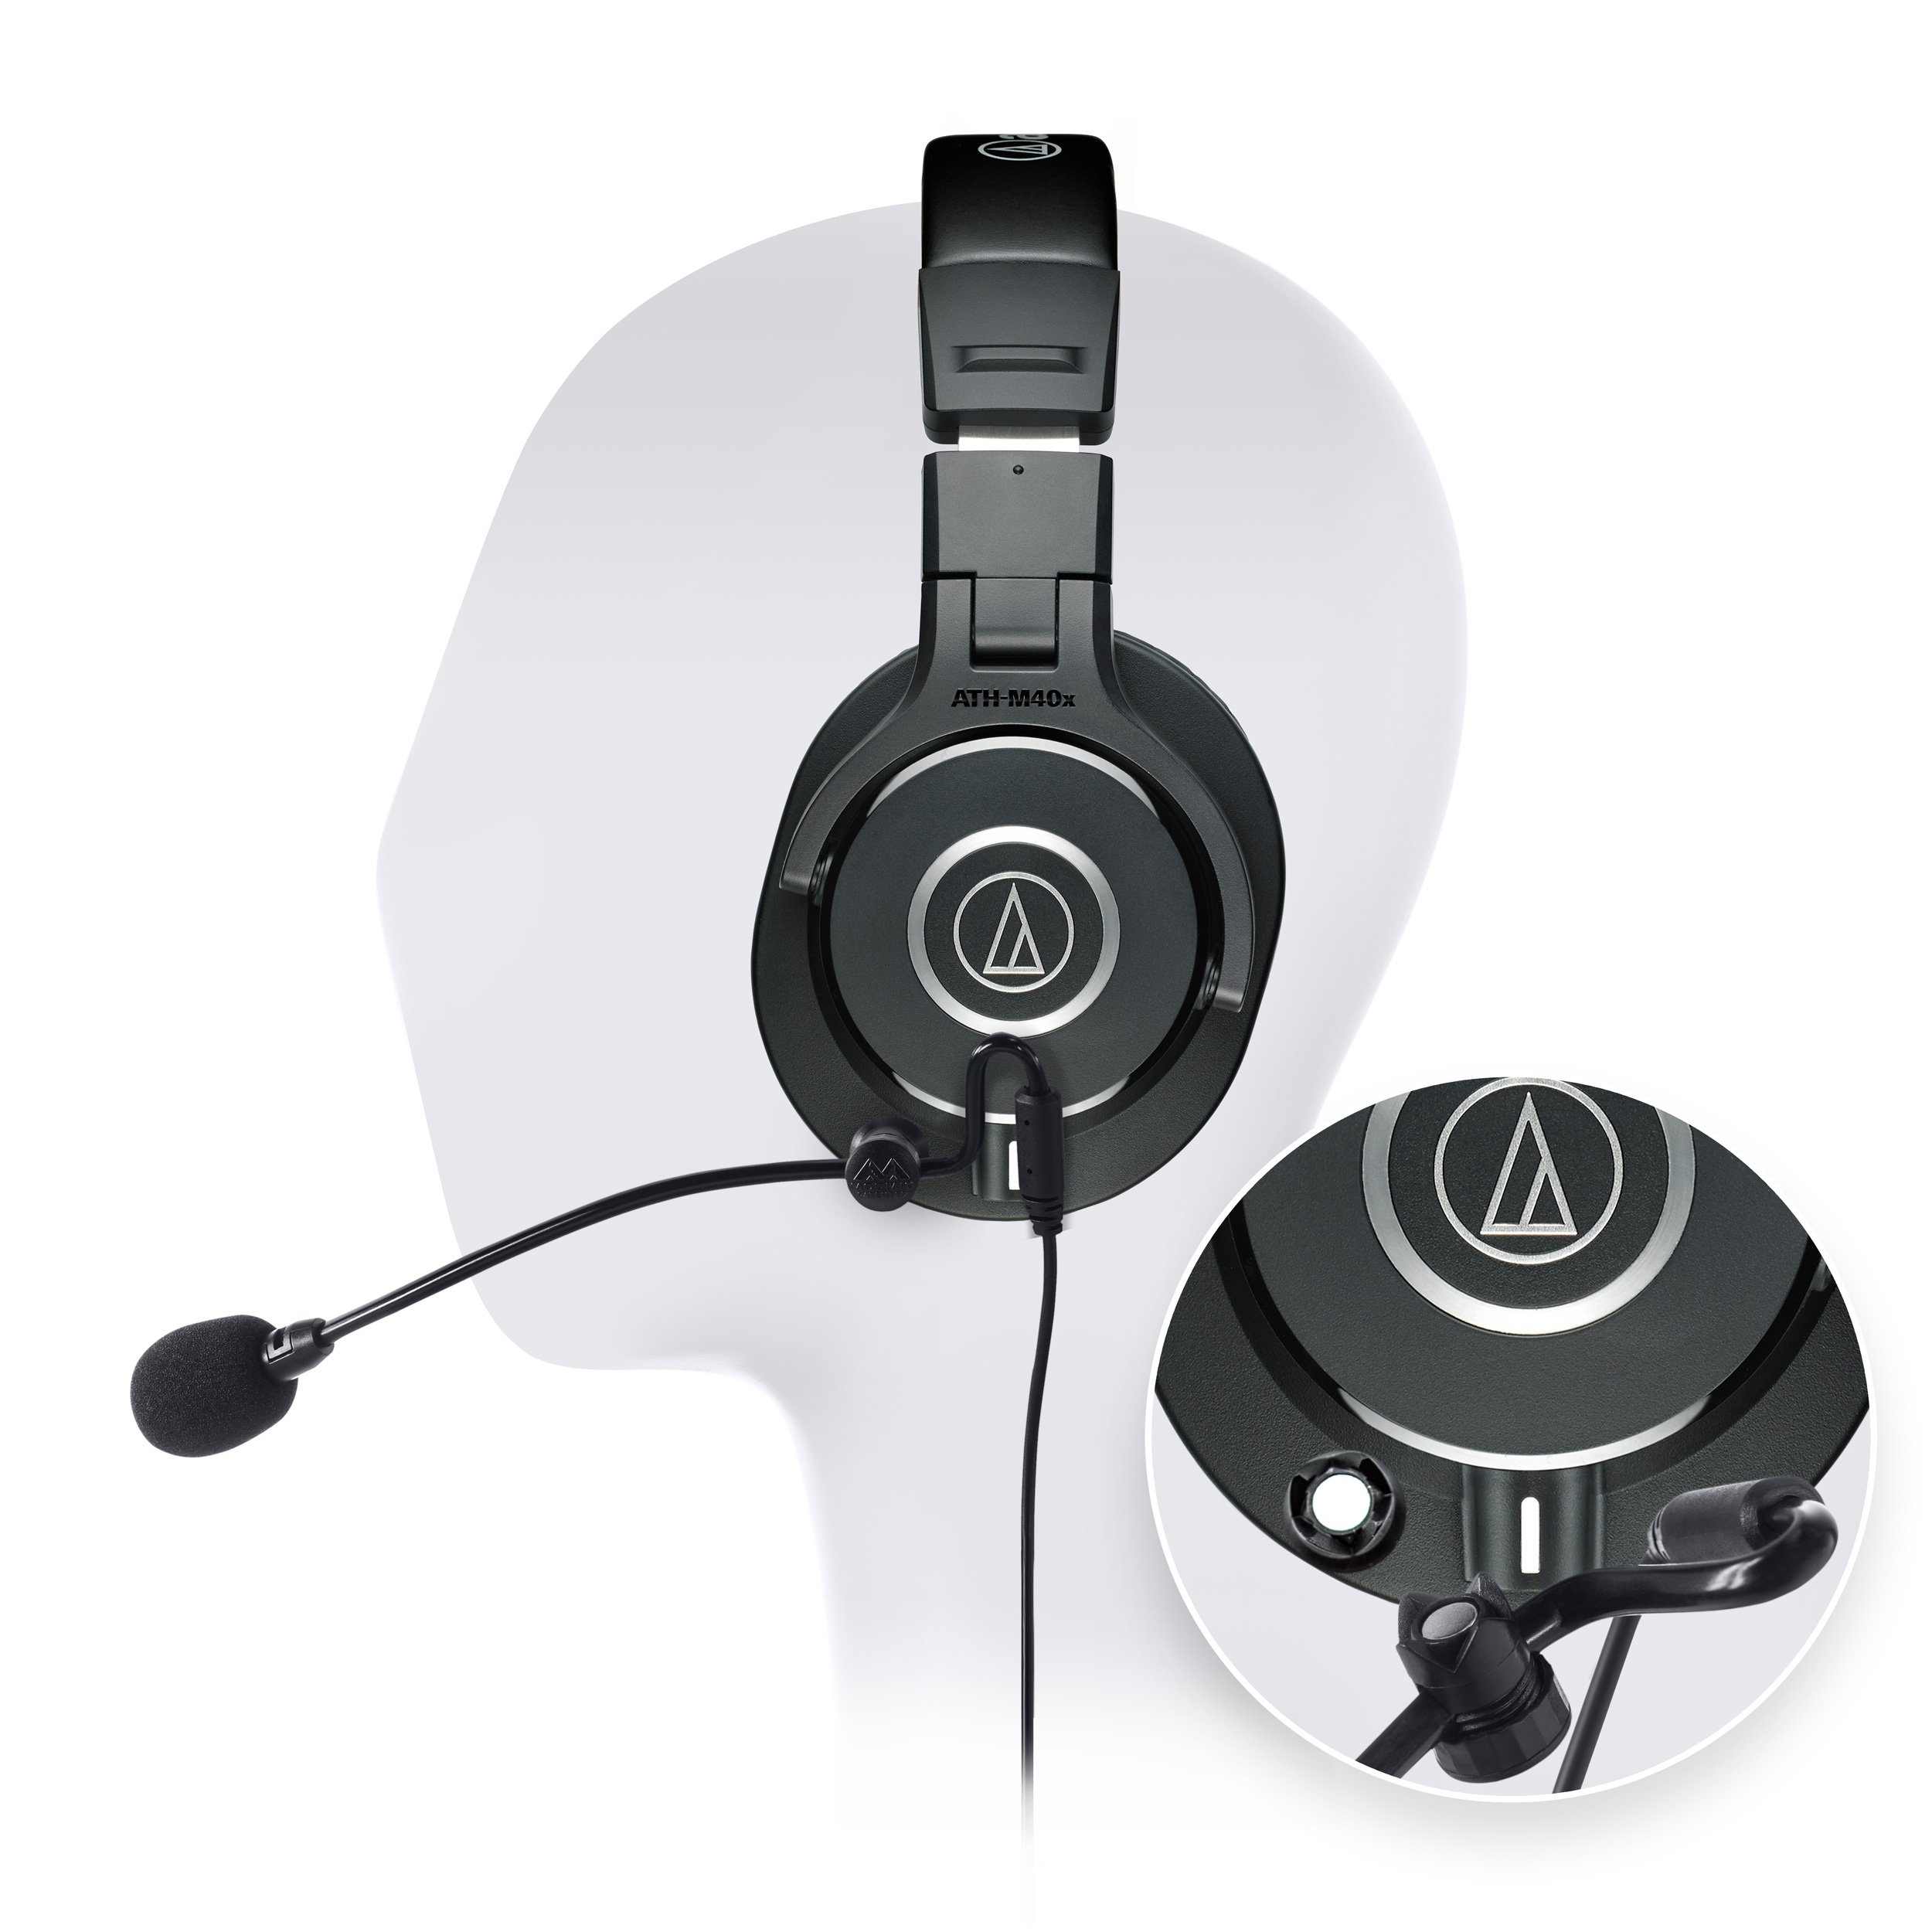 ​Audio-Technica ATH-M40x Professional Studio Headphone -INCLUDES- Antlion Audio ModMic Attachable Boom Microphone - Noise Cancelling w/ Mute Switch AND Blucoil Y Adapter - GAMING BUNDLE by blucoil